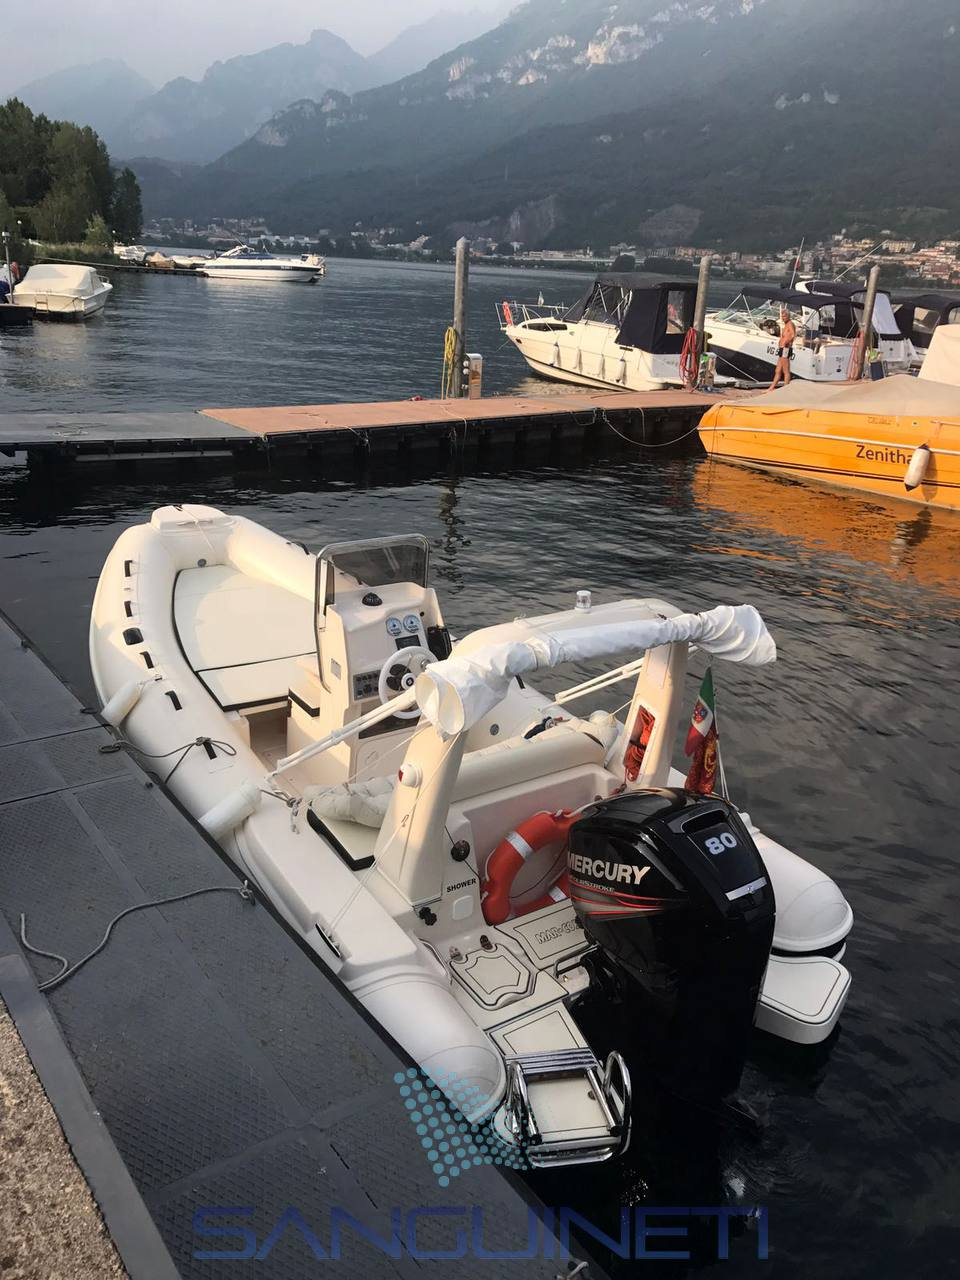 Mar.co 17 Gommone used boats for sale